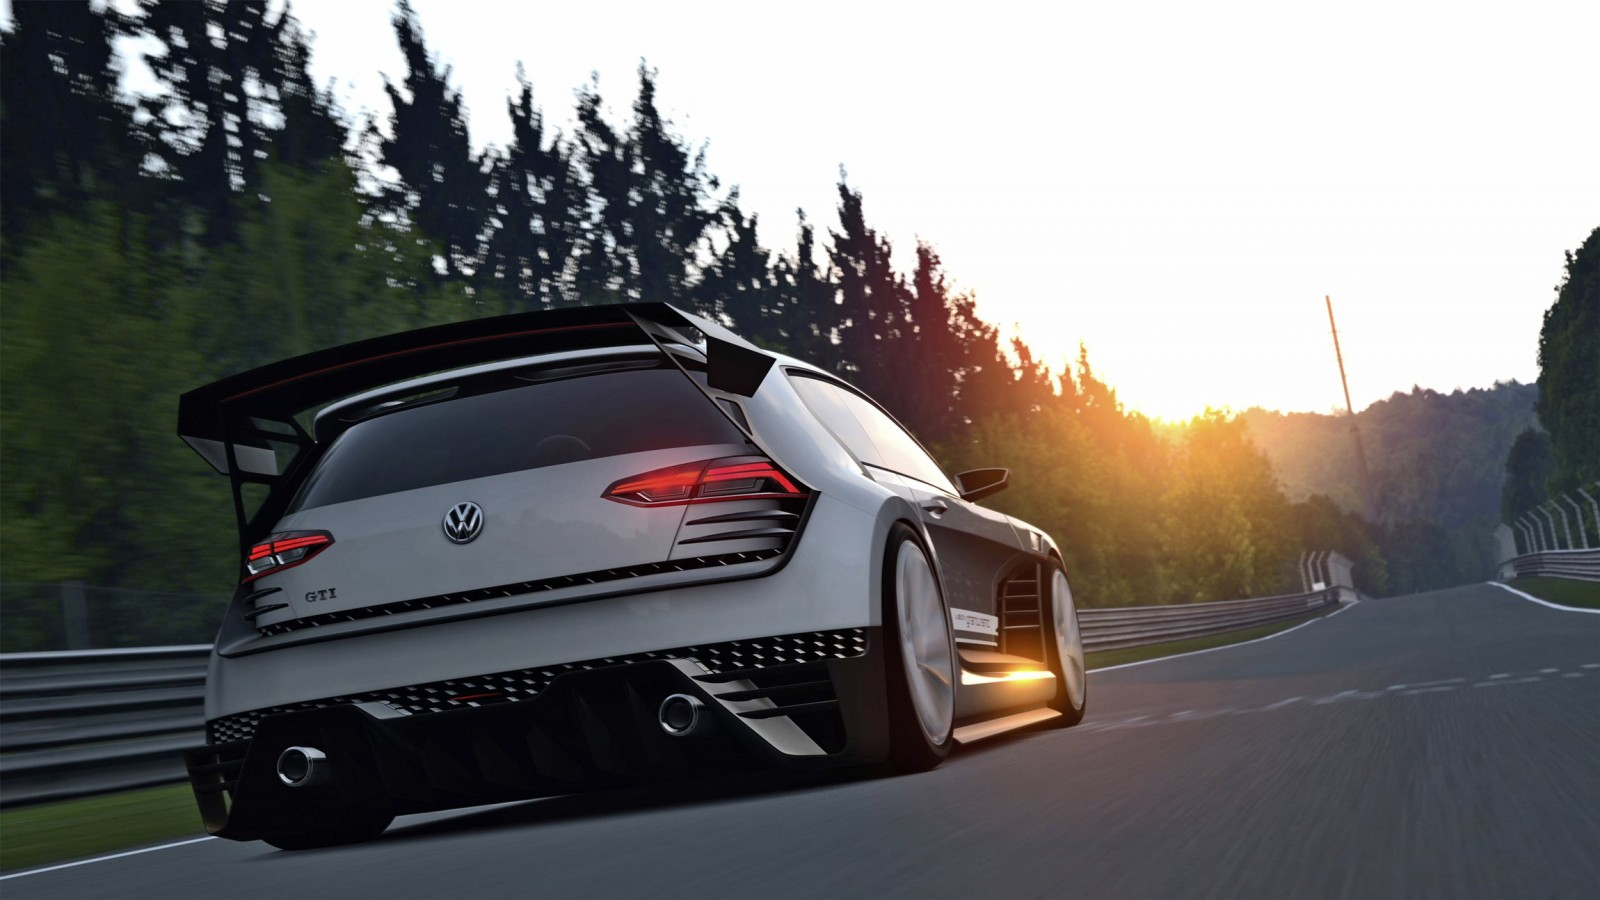 2015 Volkswagen GTI SuperSport 9